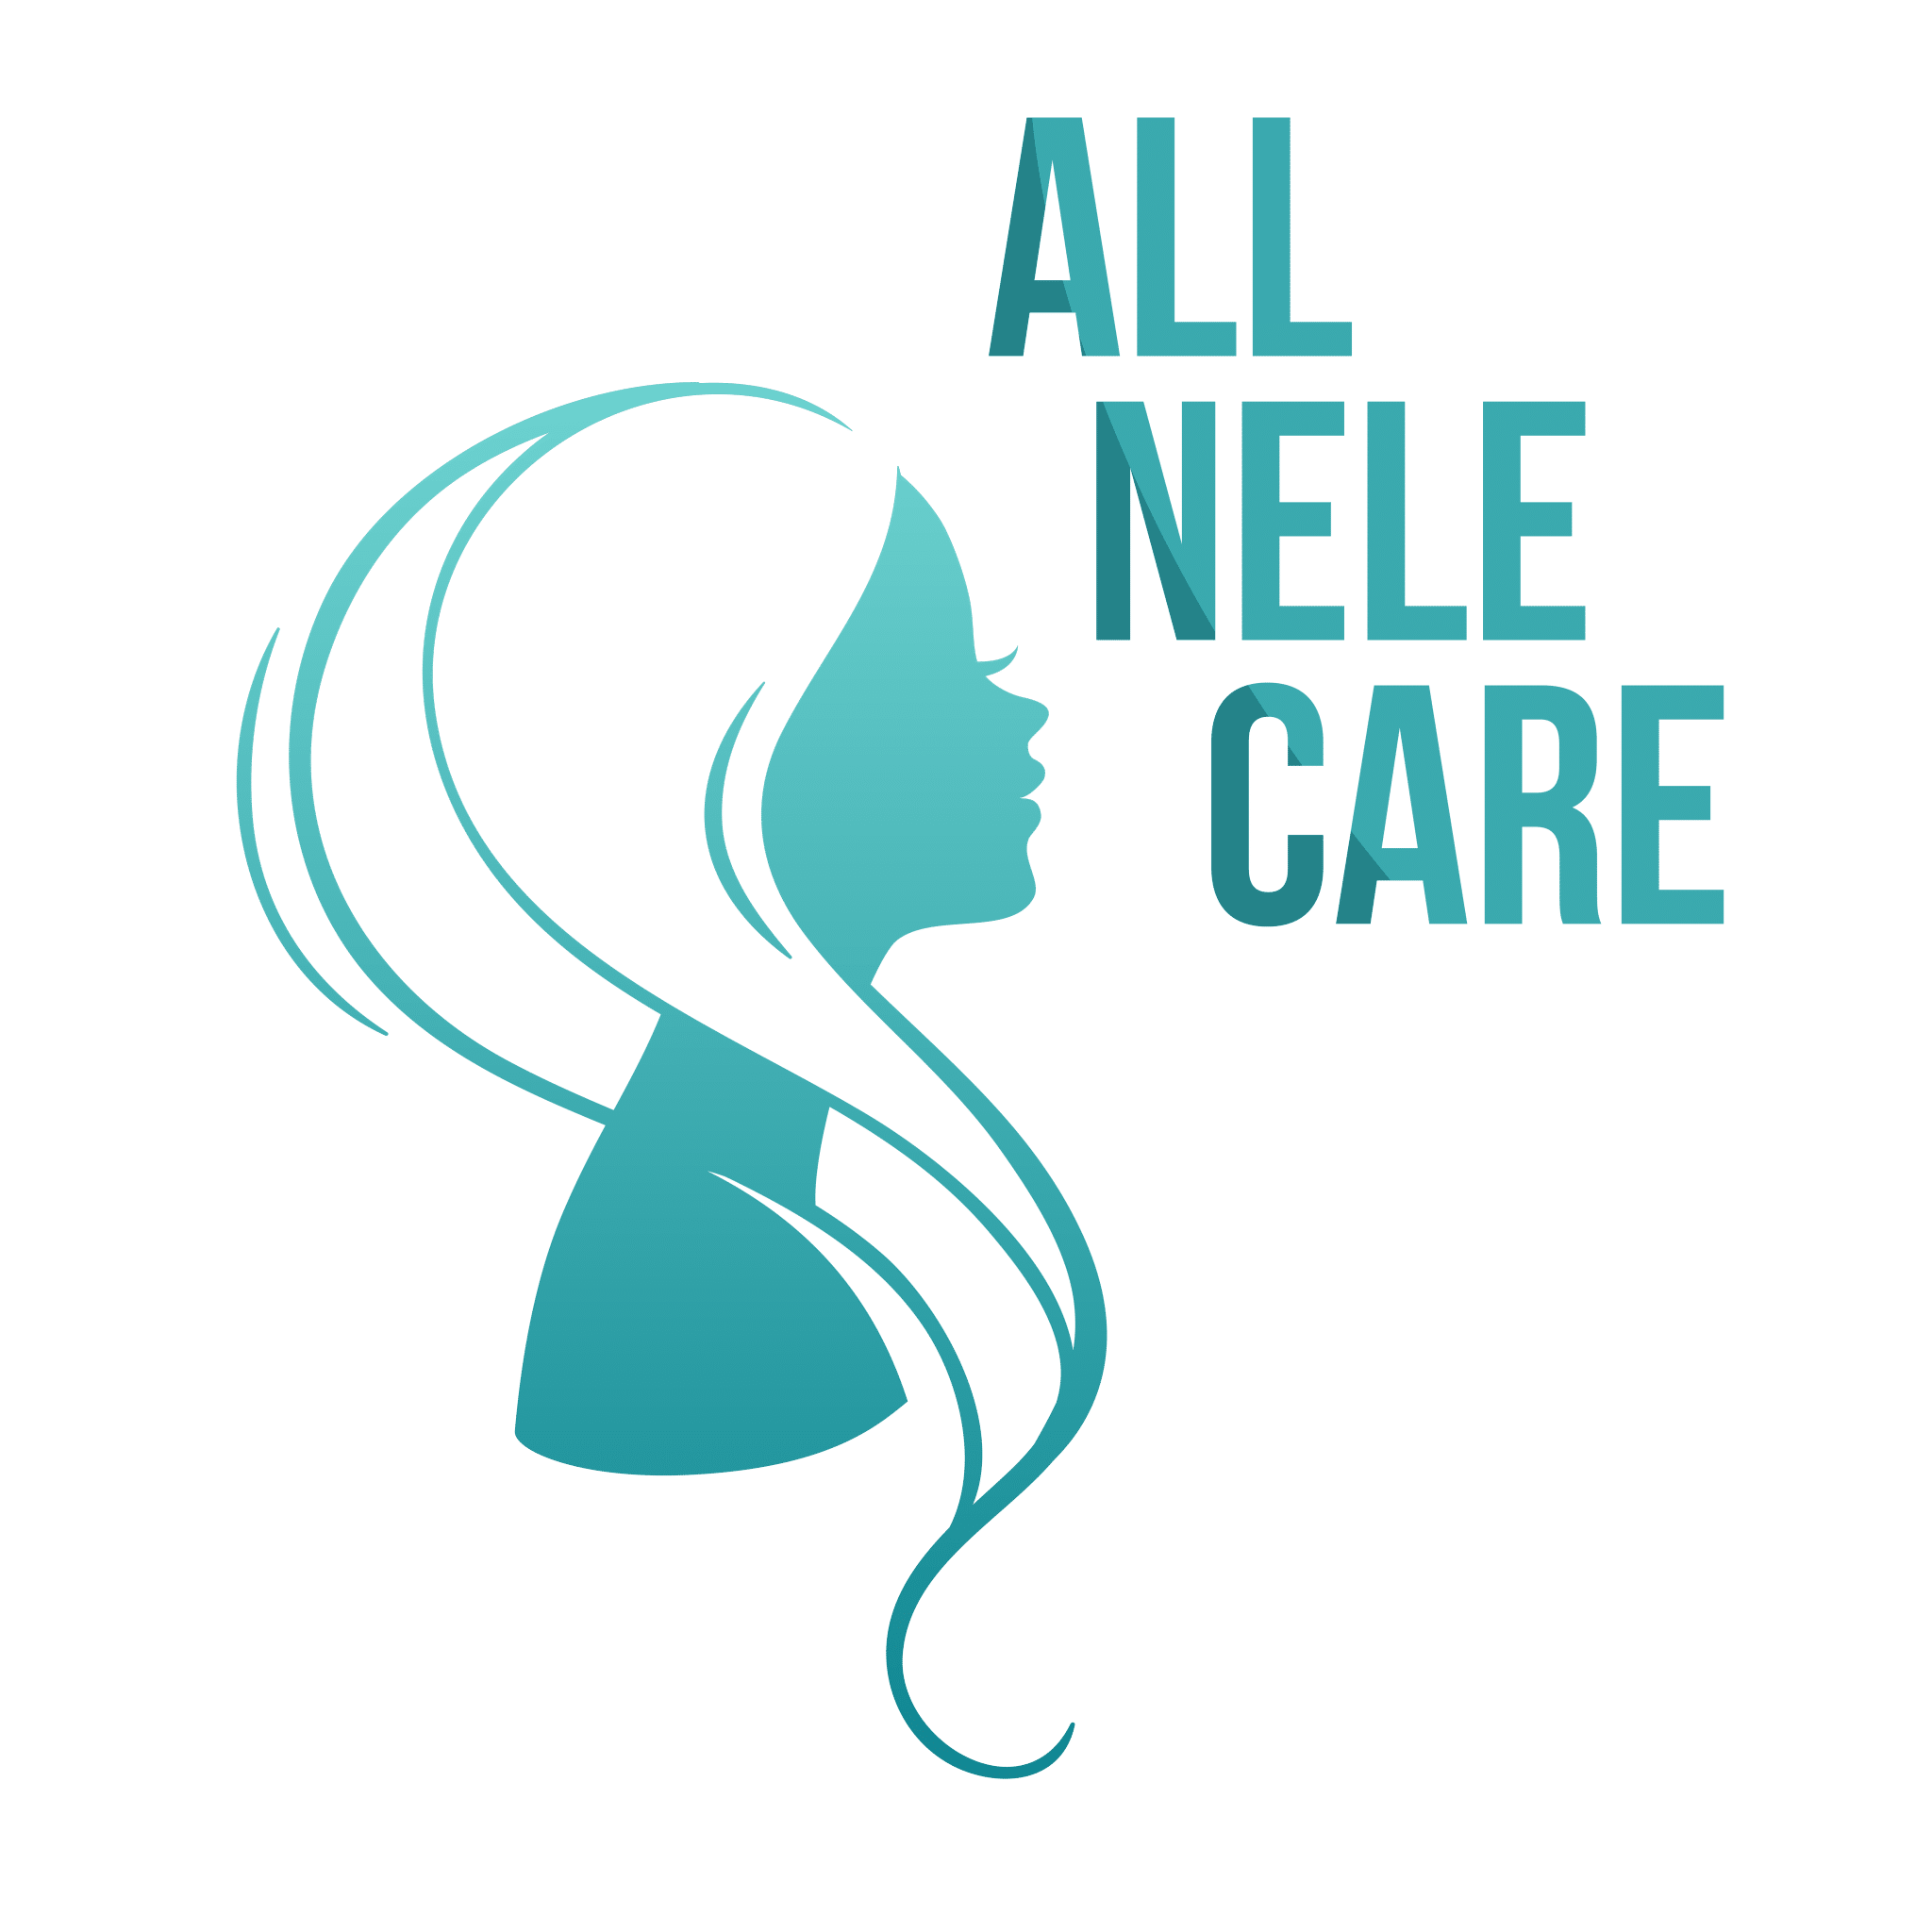 All Nele Care